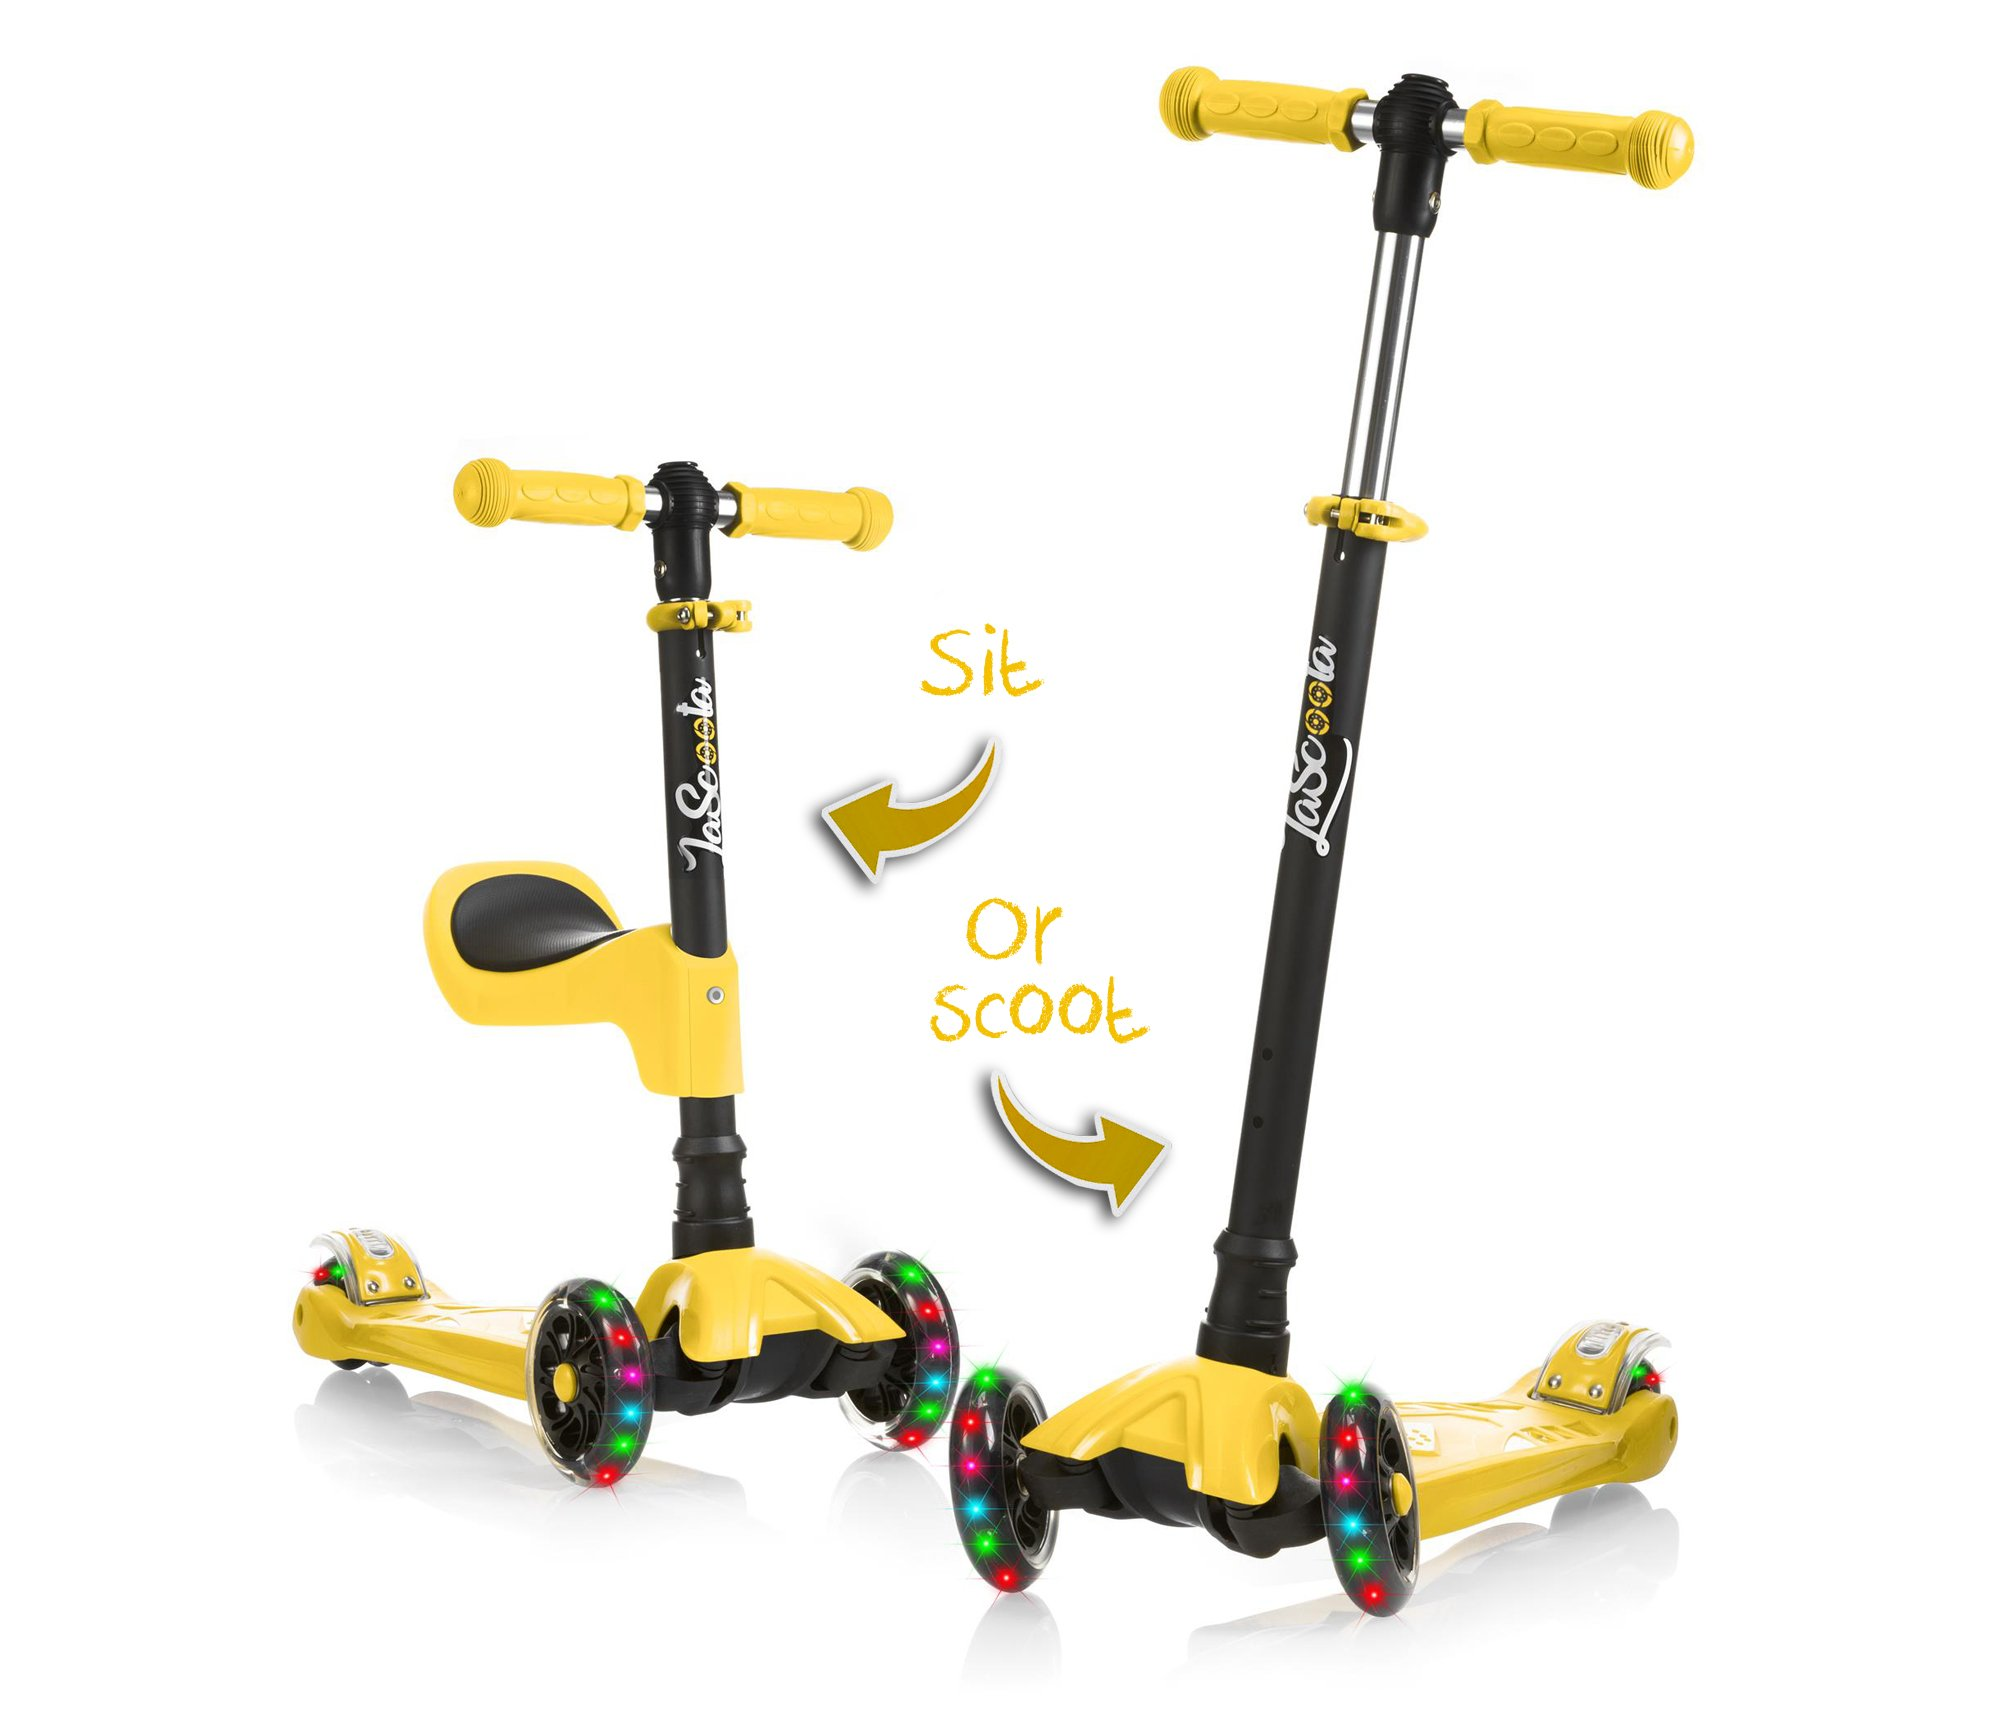 LaScoota 2-in-1 Kick Scooter with Removable Seat Great for Kids & Toddlers Girls or Boys – Adjustable Height w/Extra-Wide Deck PU Flashing Wheels for Children from 2 to 14 Year-Old (Yellow)